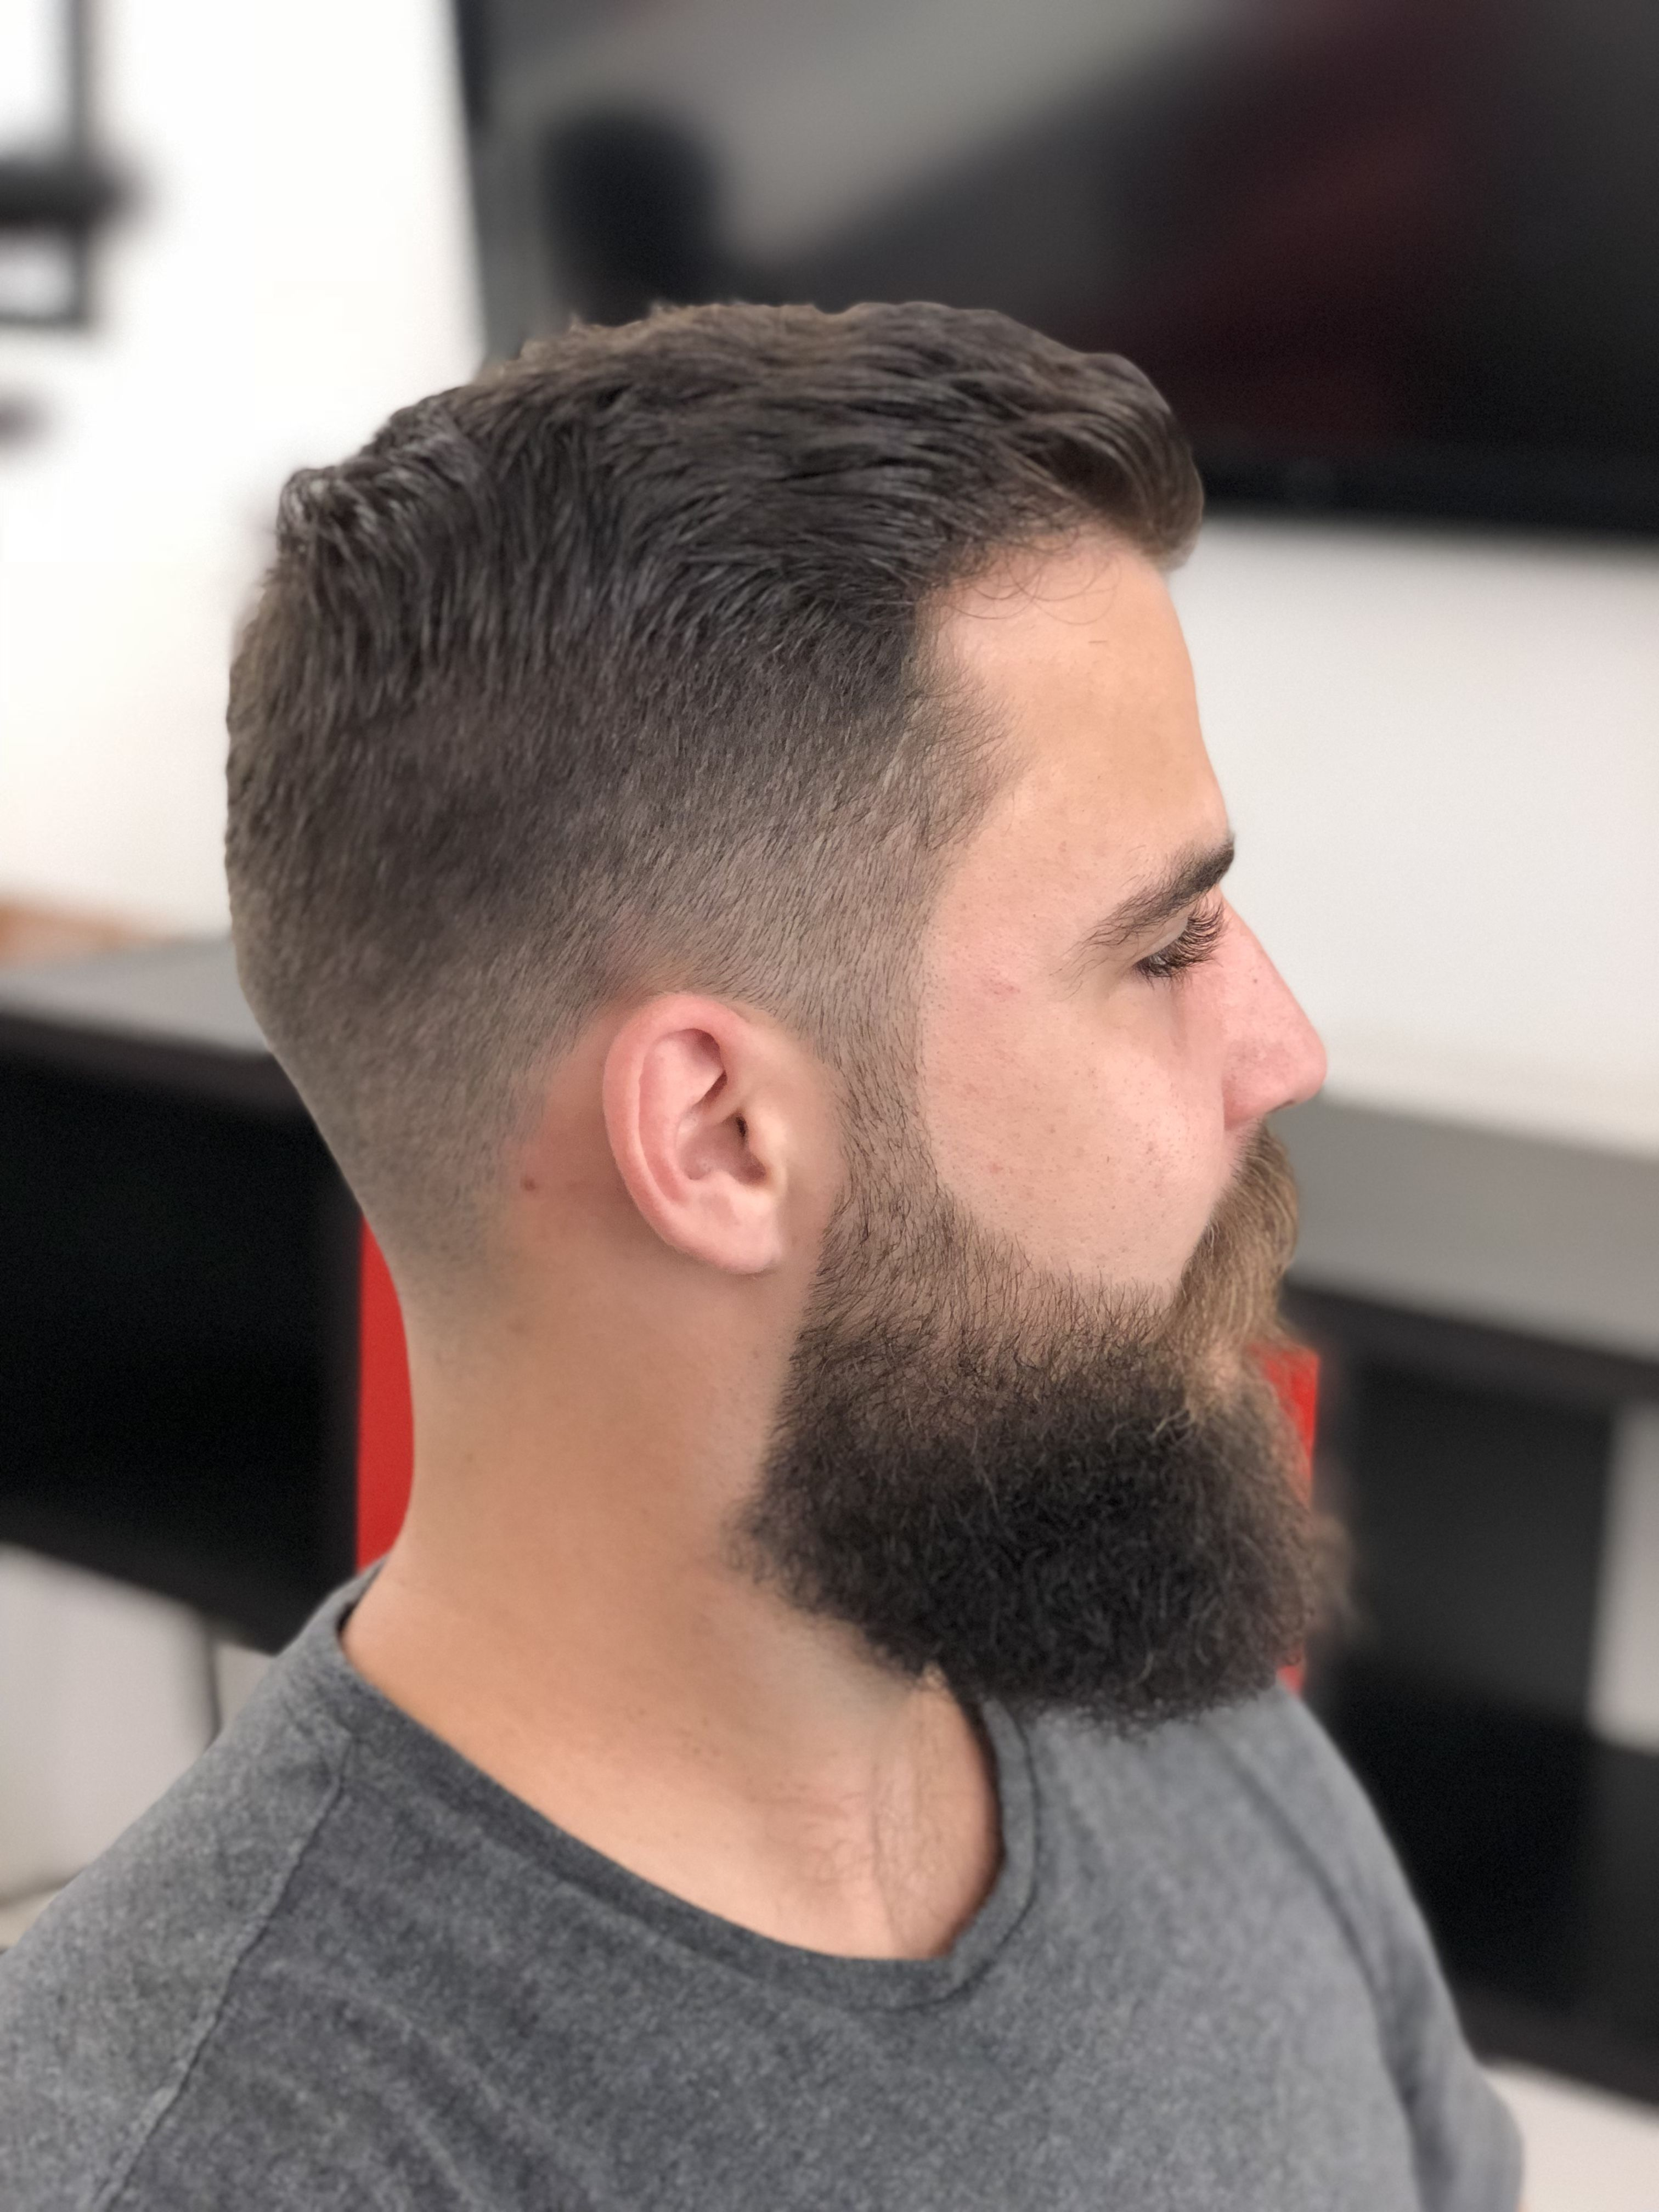 Possible Hairstyles Dapperhaircuts With Images Beard Fade Hair And Beard Styles Short Hair Long Beard